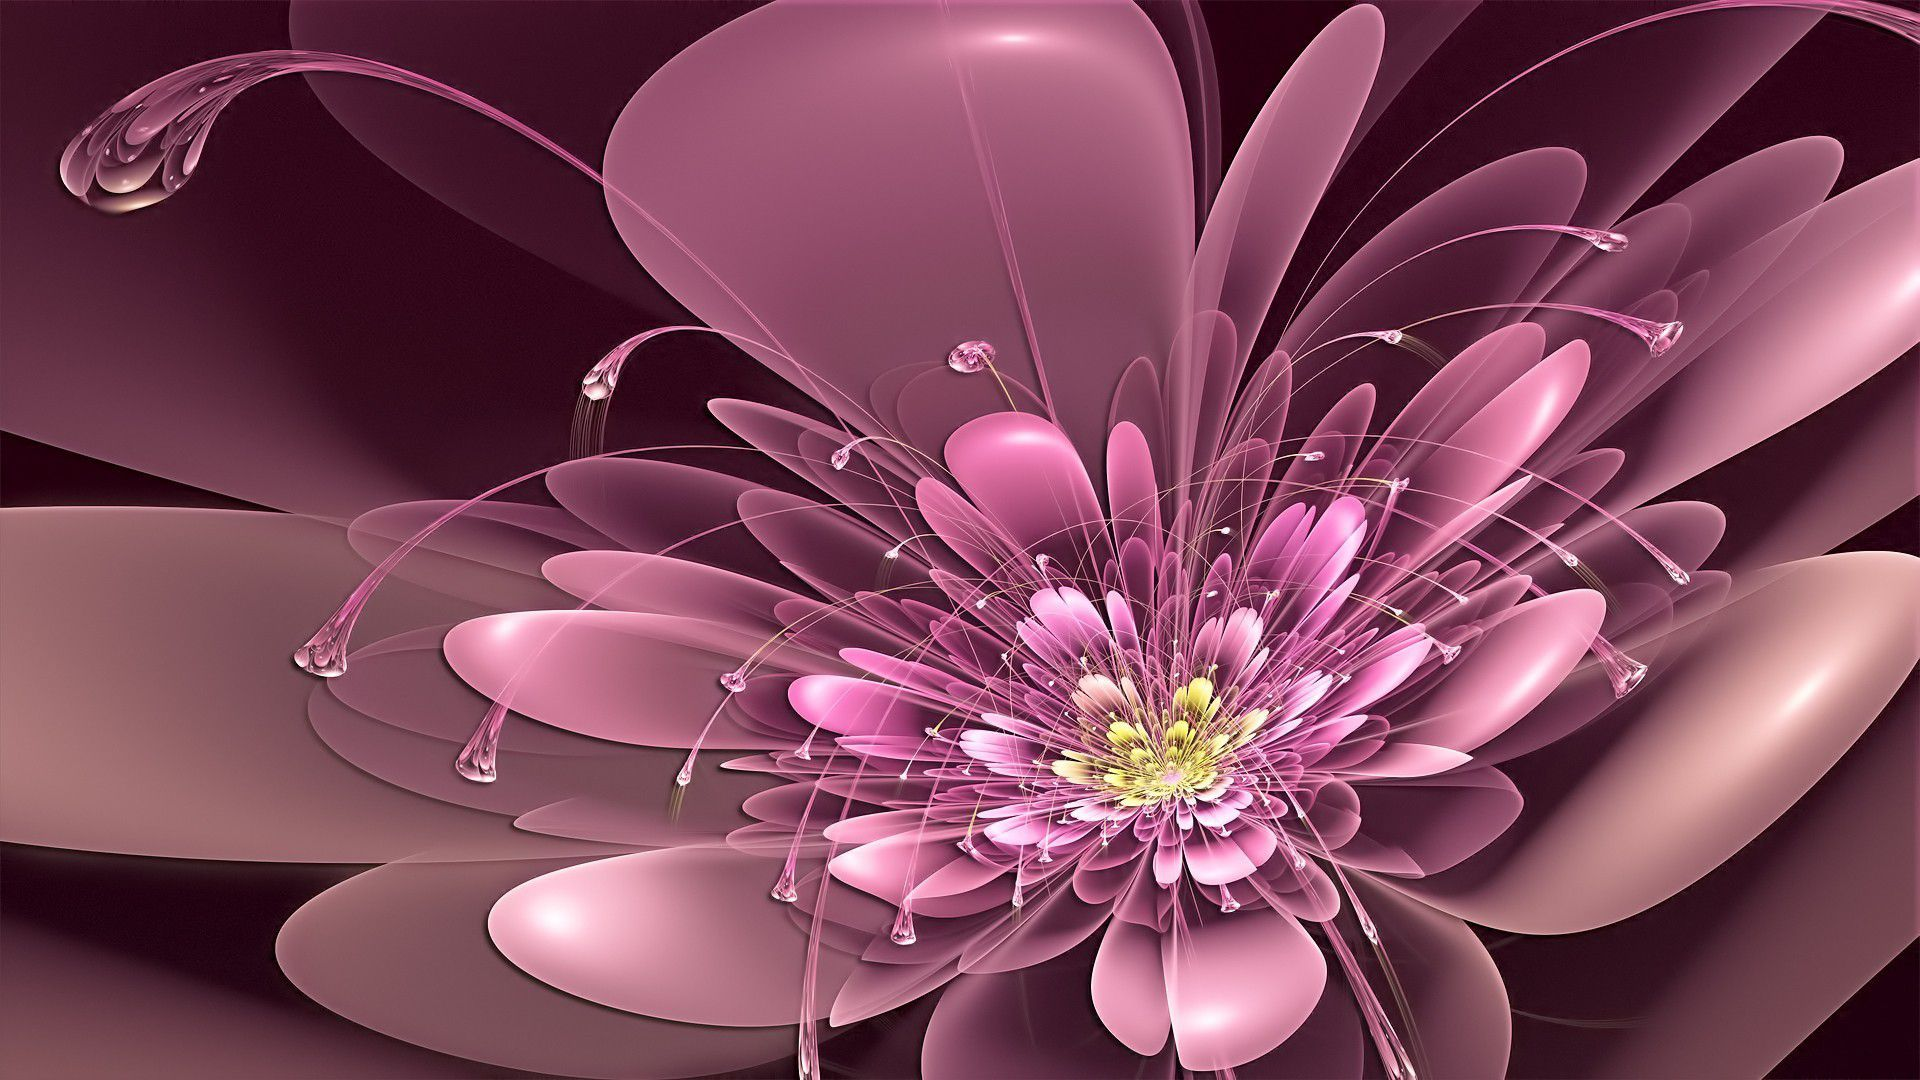 Flower Wallpapers - Page 2